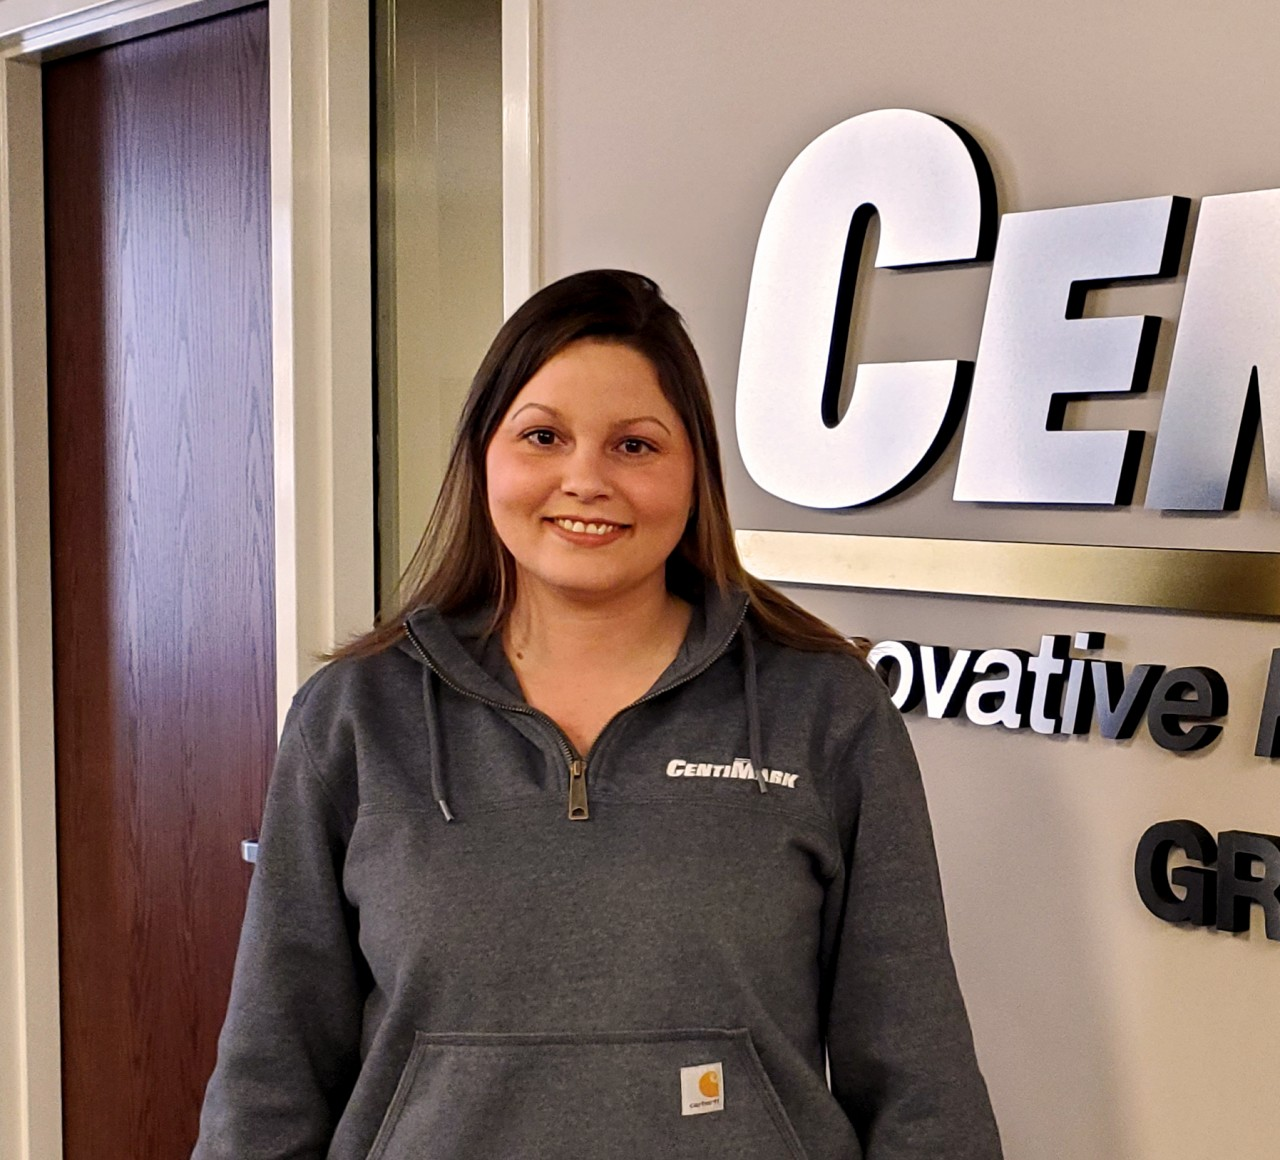 Women in Roofing - Meet CentiMark's Jamie C.